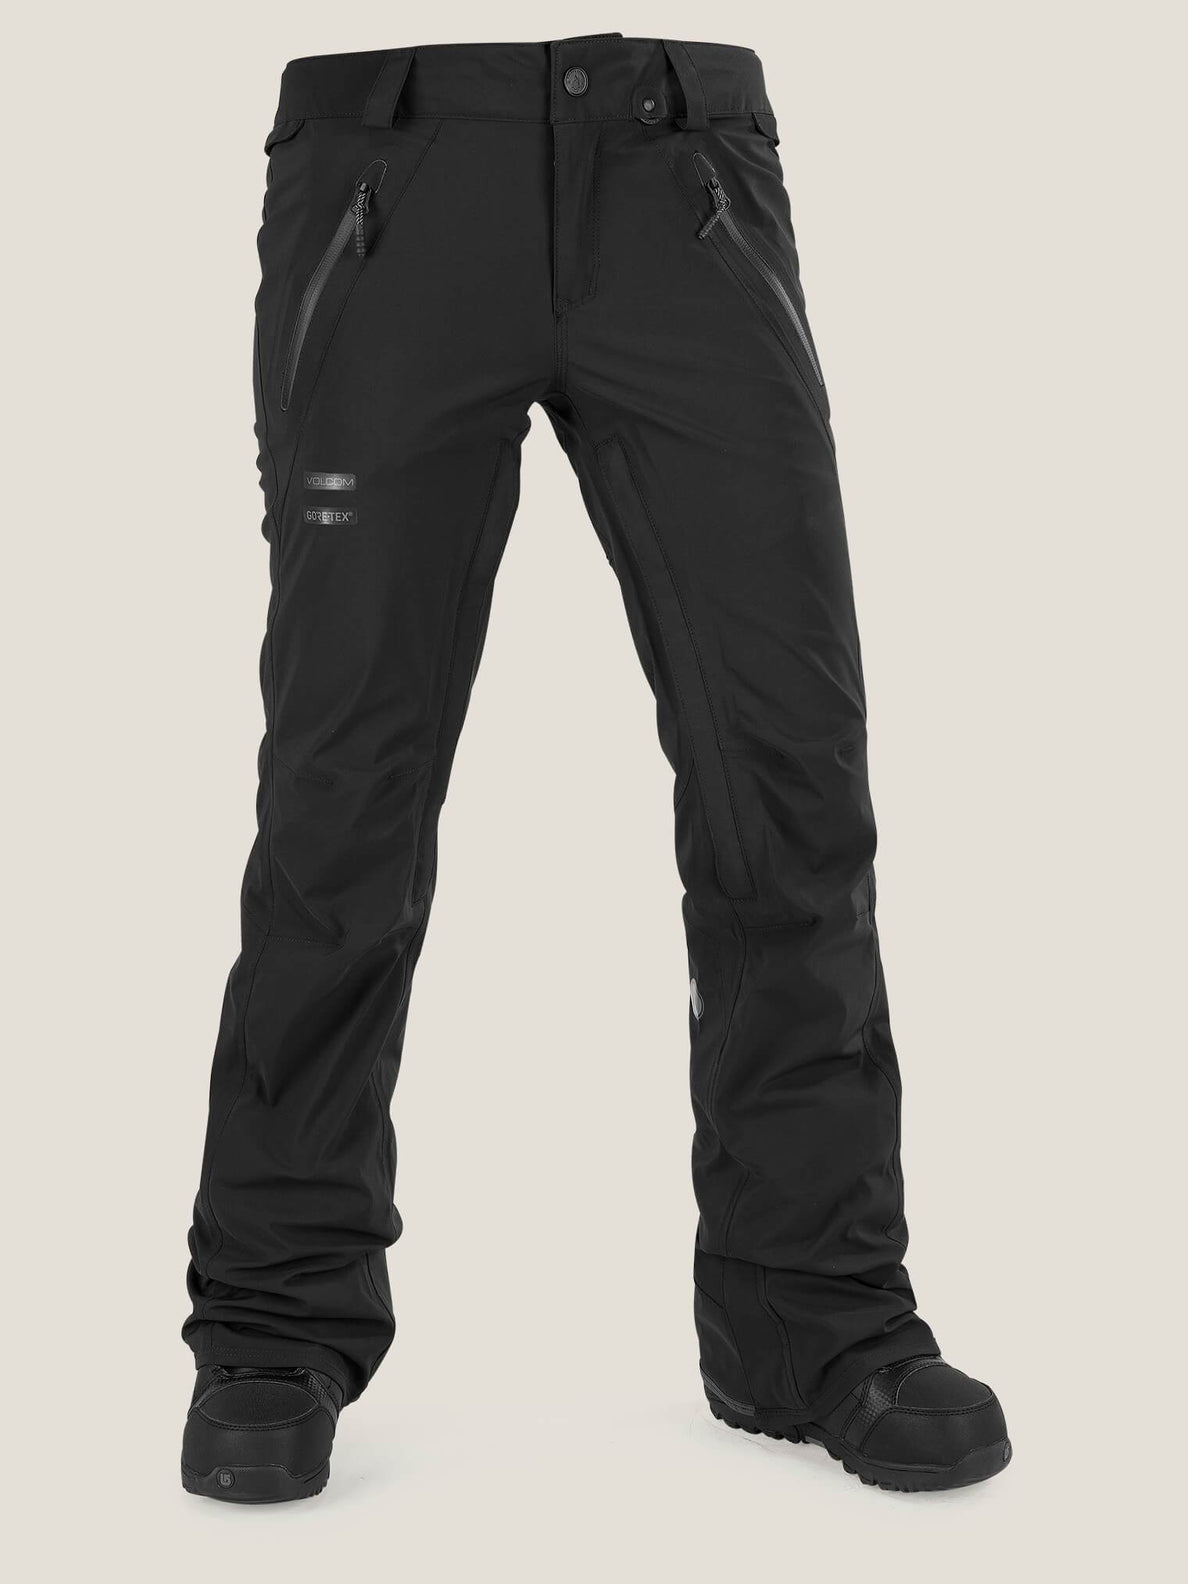 Pvn Gore-tex® Stretch Pant In Black, Front View